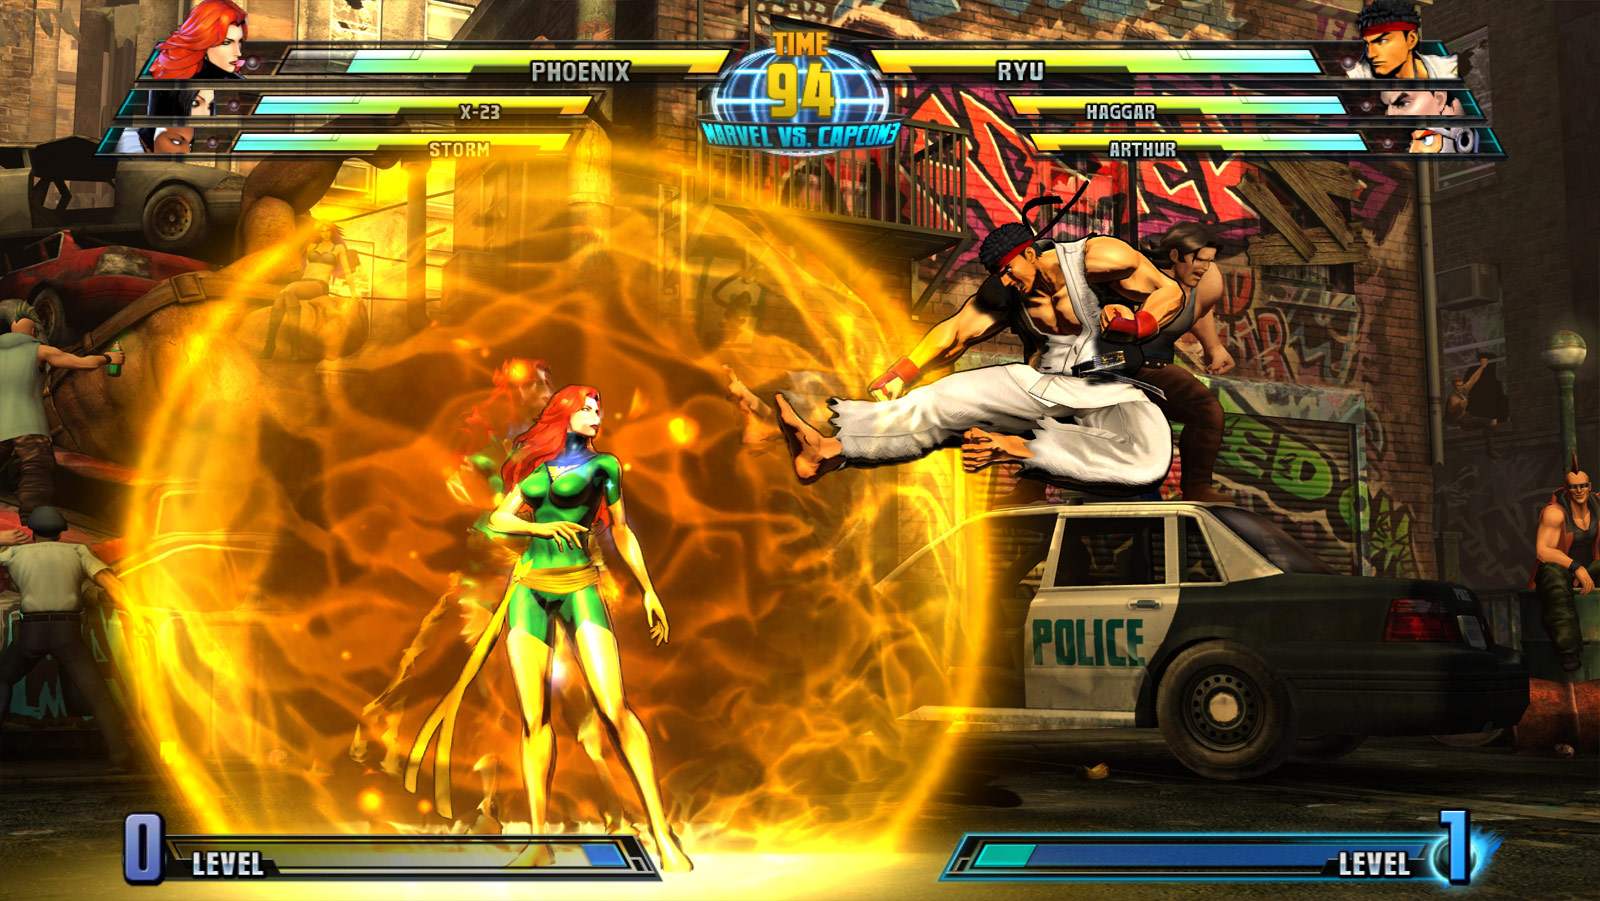 Phoenix and Haggar screen shots for Marvel vs. Capcom 3 #16